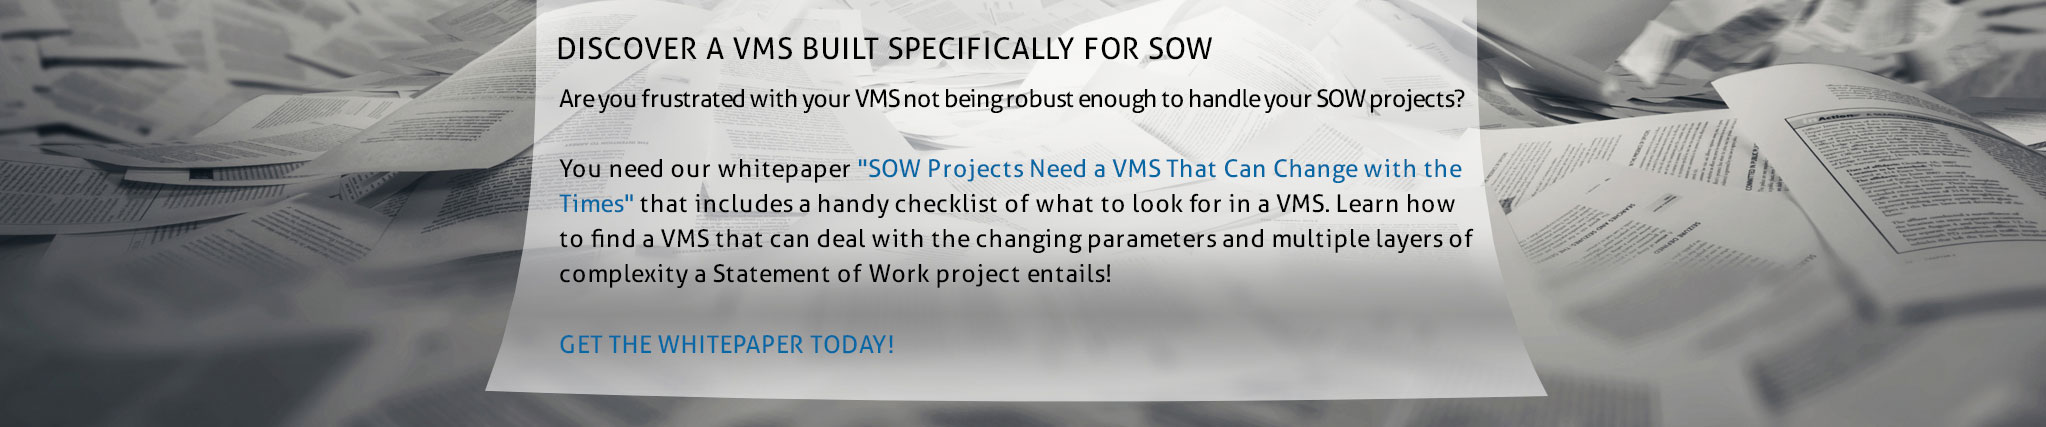 Discover a VMS Built Specifically for SOW